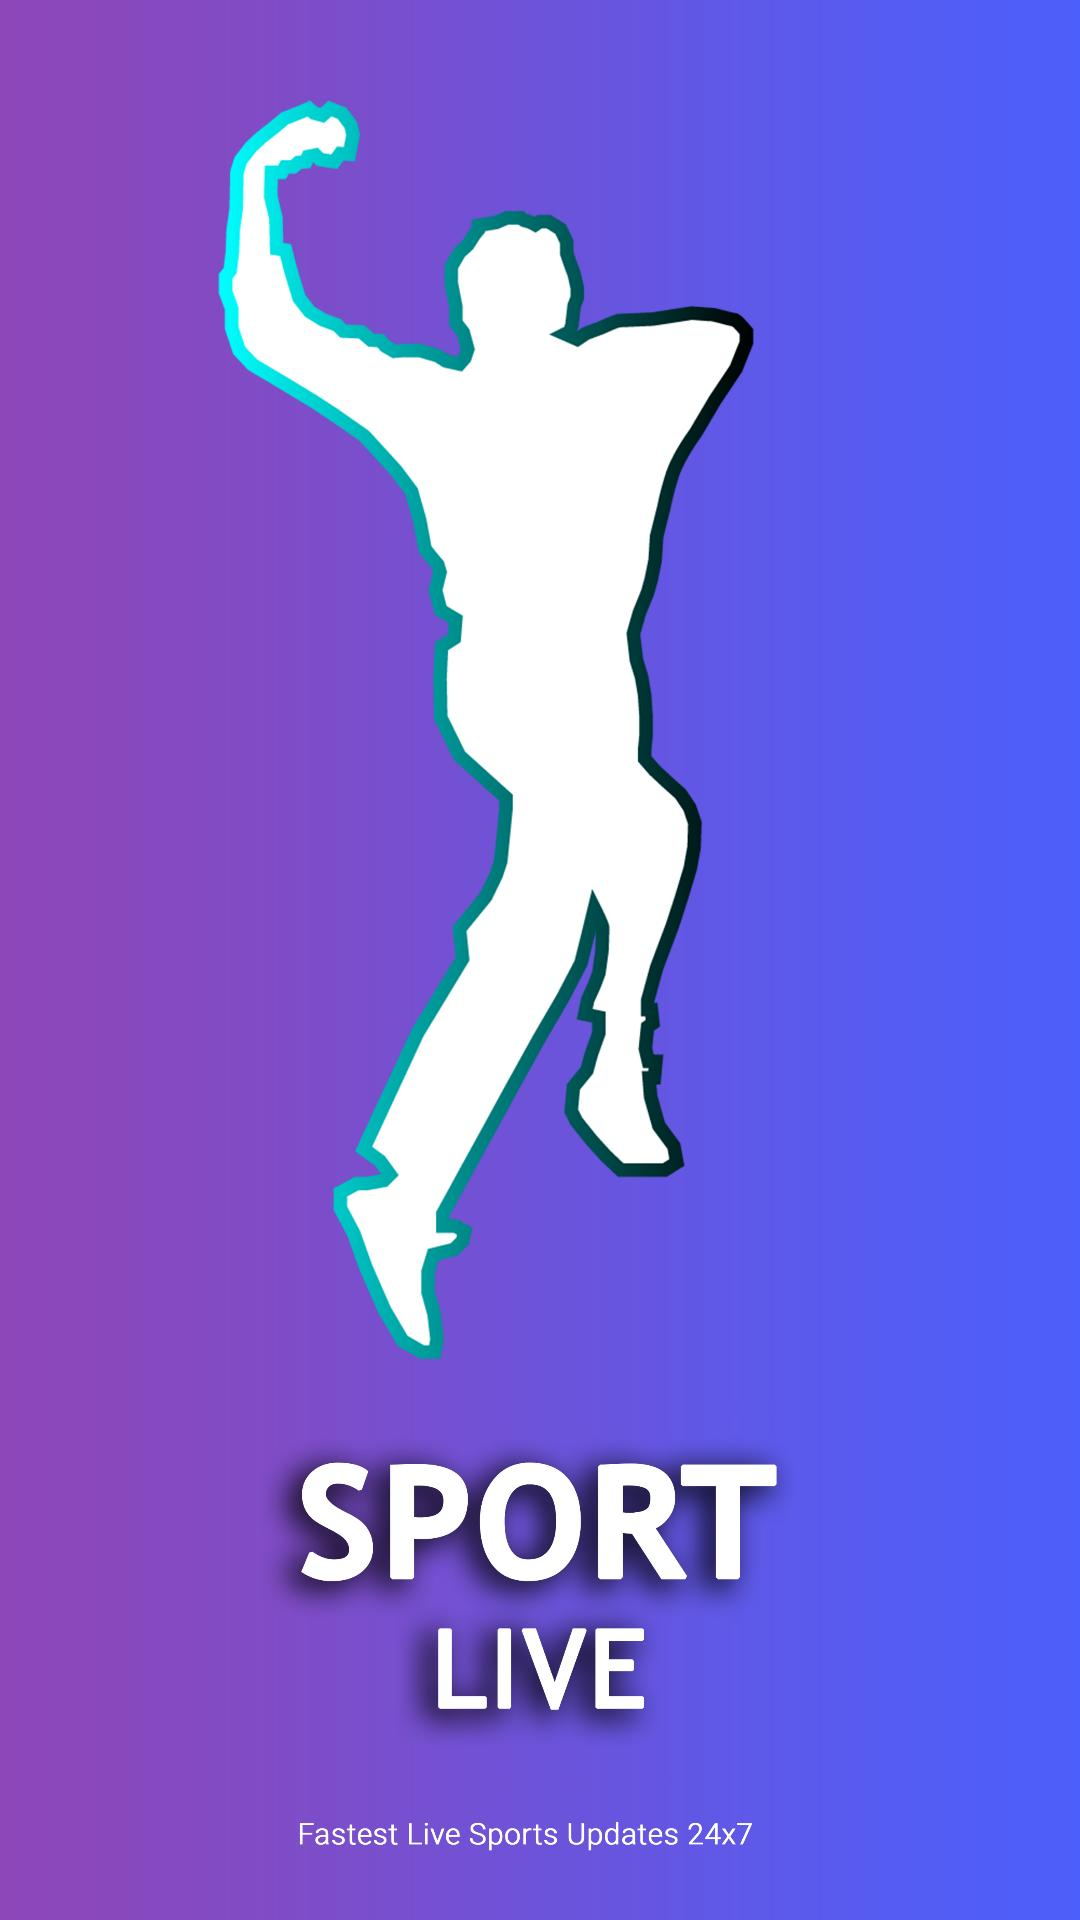 Sport Live - Cricket Live for Android - APK Download